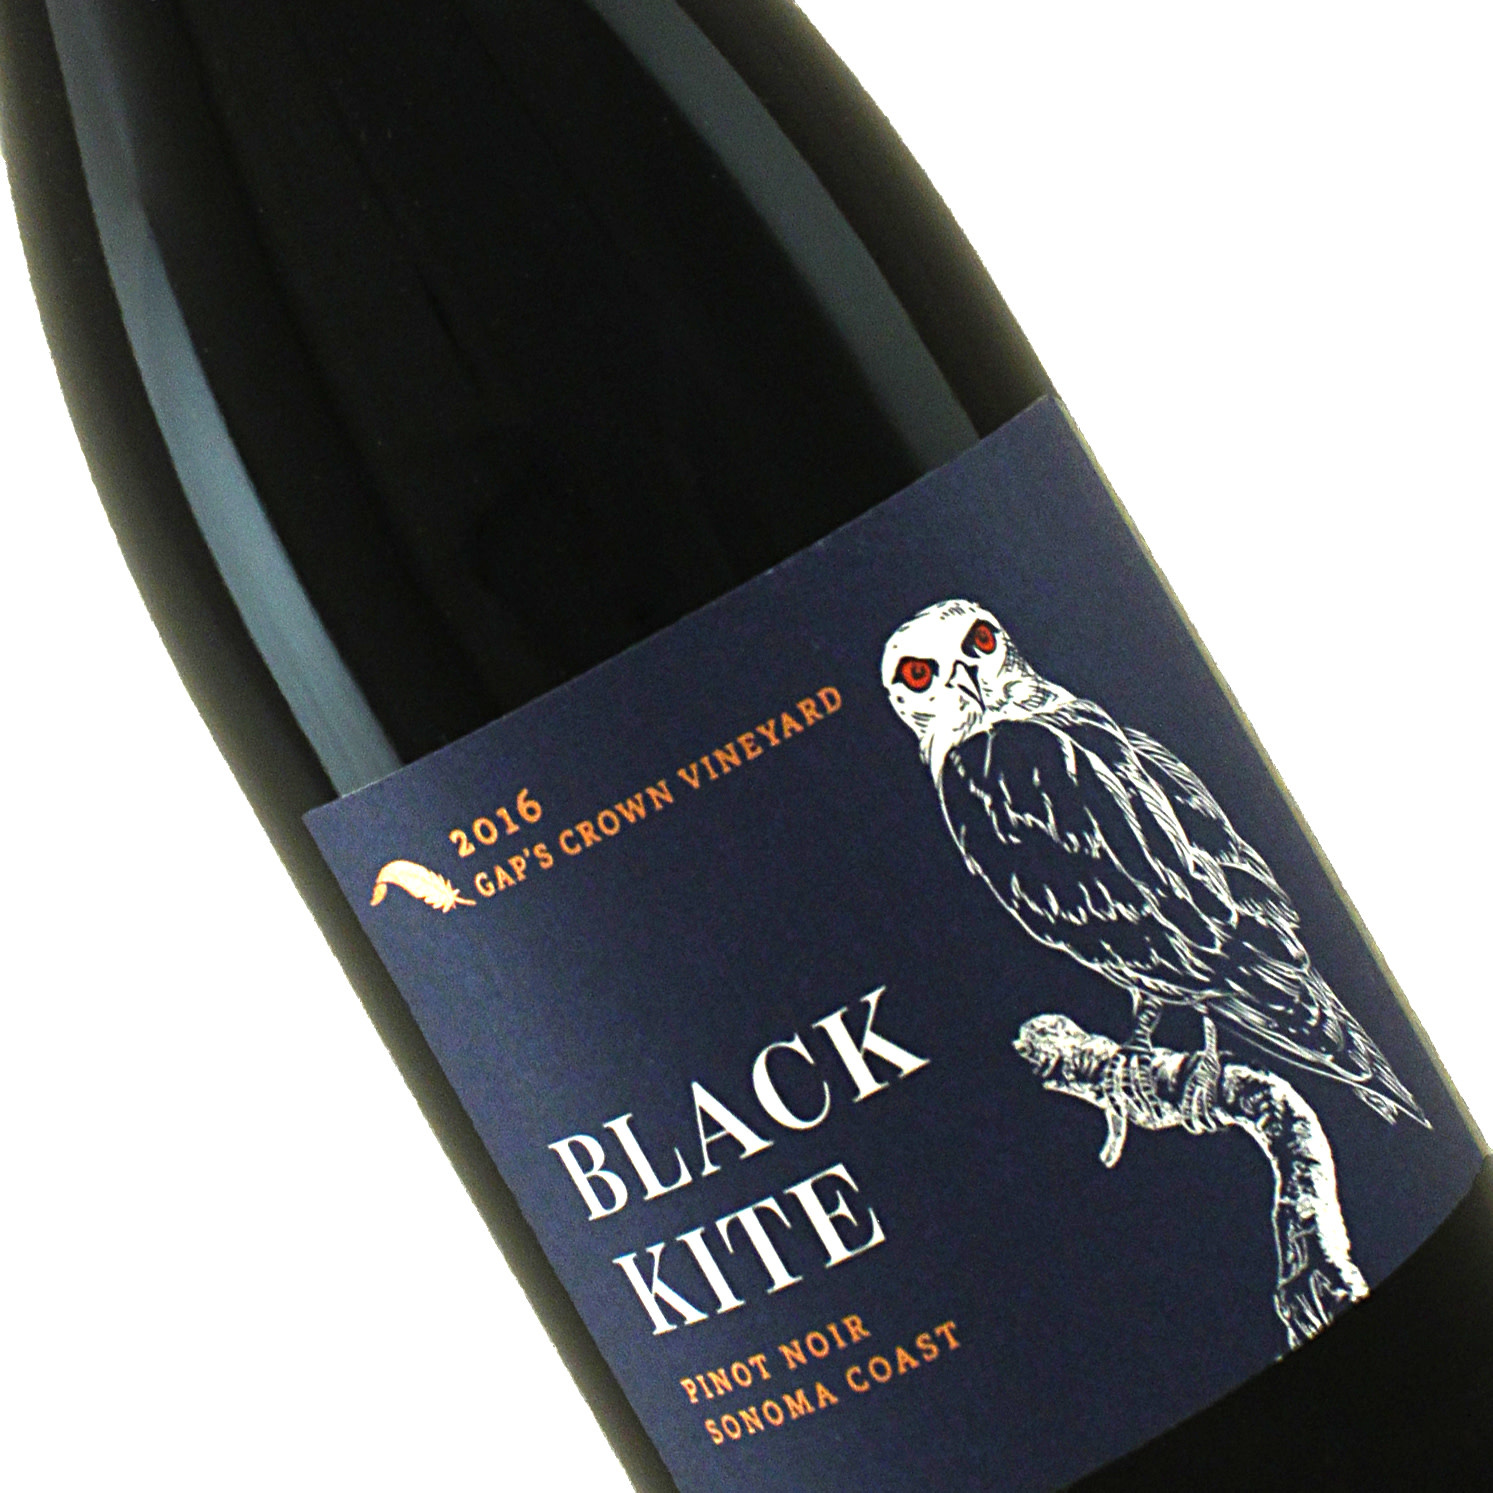 Black Kite 2016 Pinot Noir Cap's Crown Vineyard, Sonoma Coast